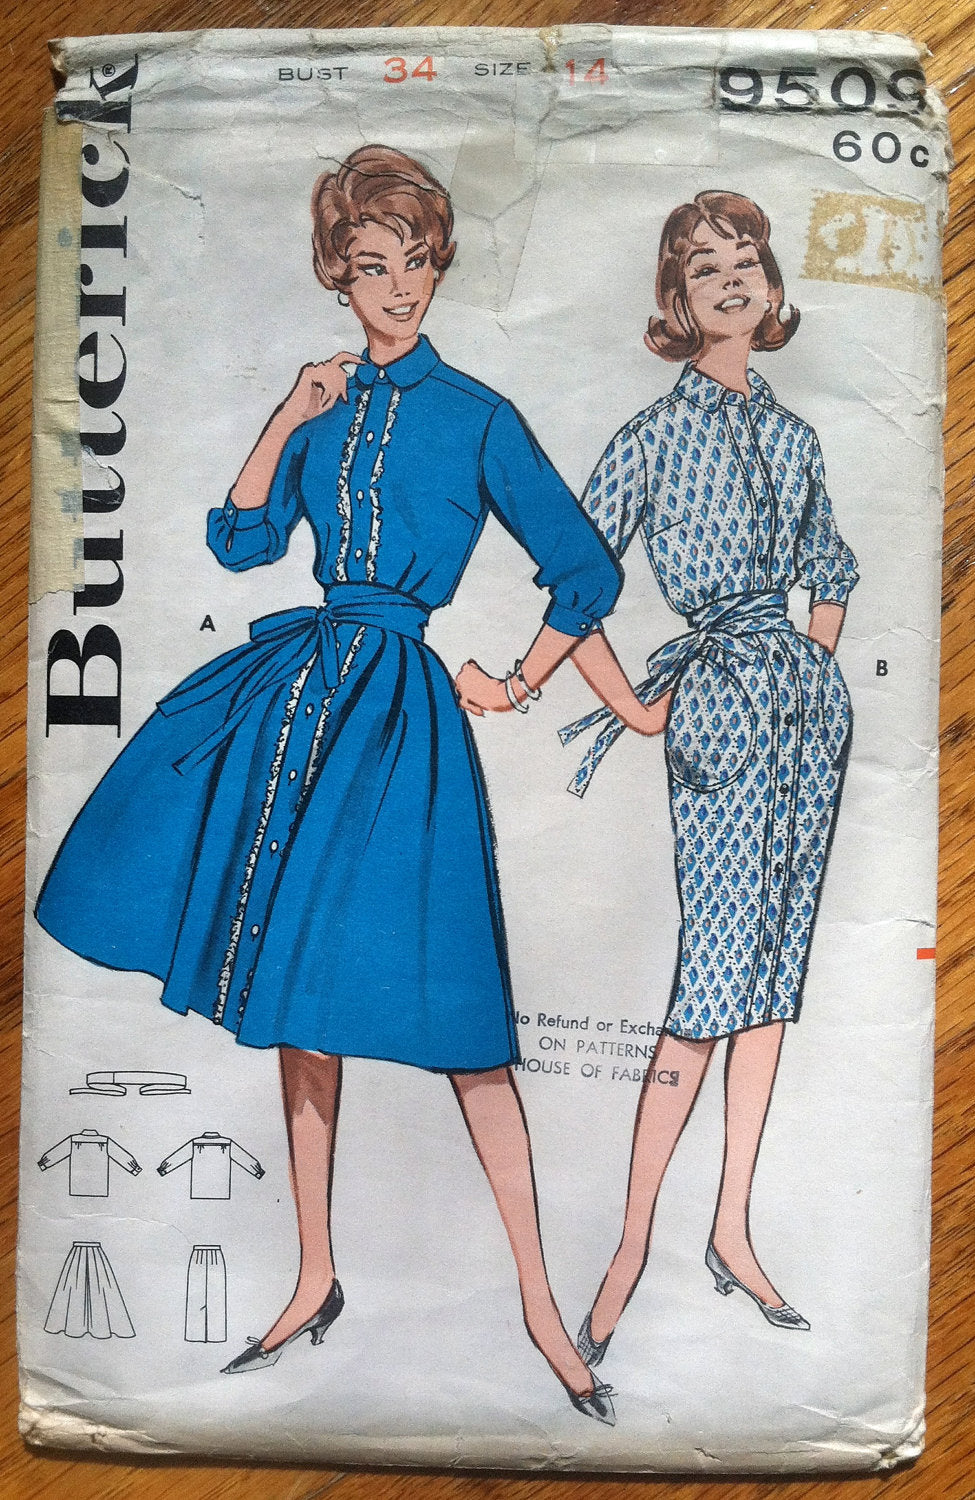 1960's Butterick Wiggle and Rockabilly Dress Pattern - Bust 34